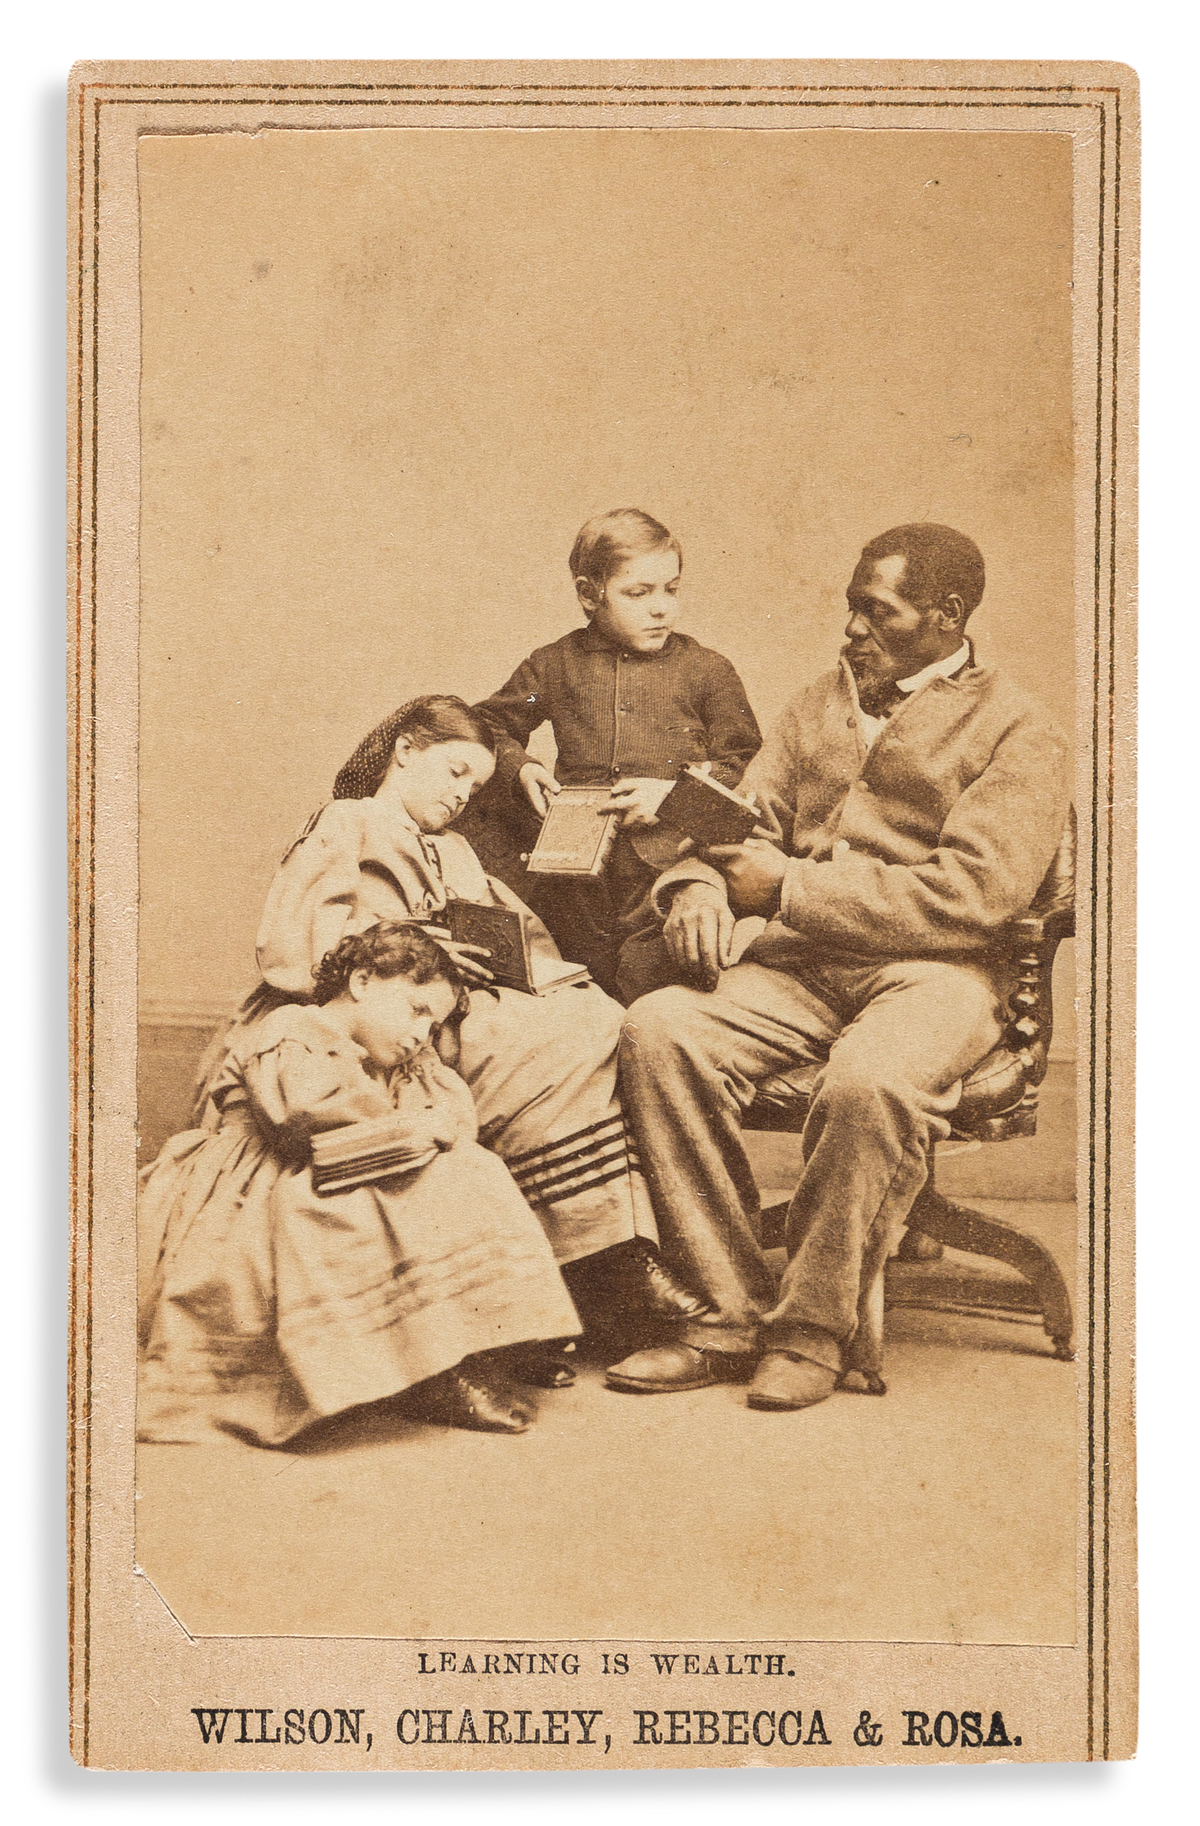 (SLAVERY AND ABOLITION.) Charles Paxson; photographer. Learning is Wealth: Wilson, Charley, Rebecca & Rosa, Slaves from New Orleans.